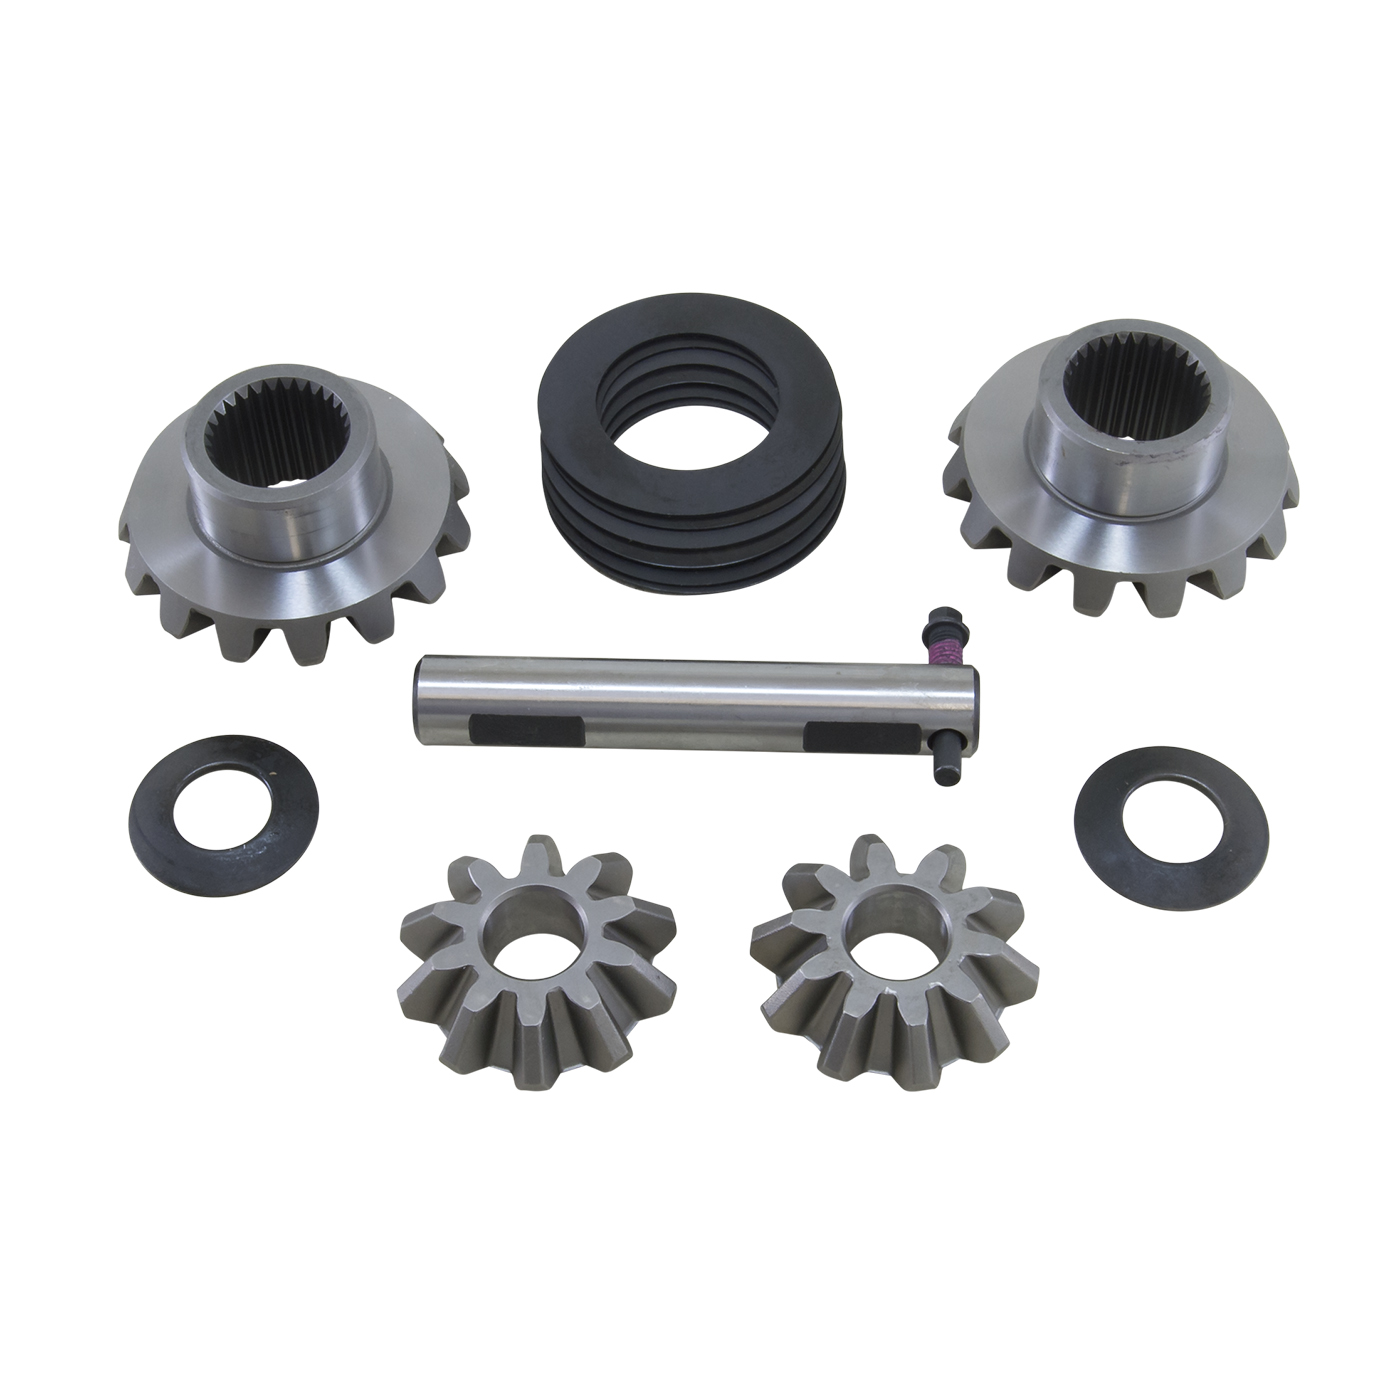 YPKC8.25-S-29 - Yukon standard open spider gear kit for '97 and newer 8.25